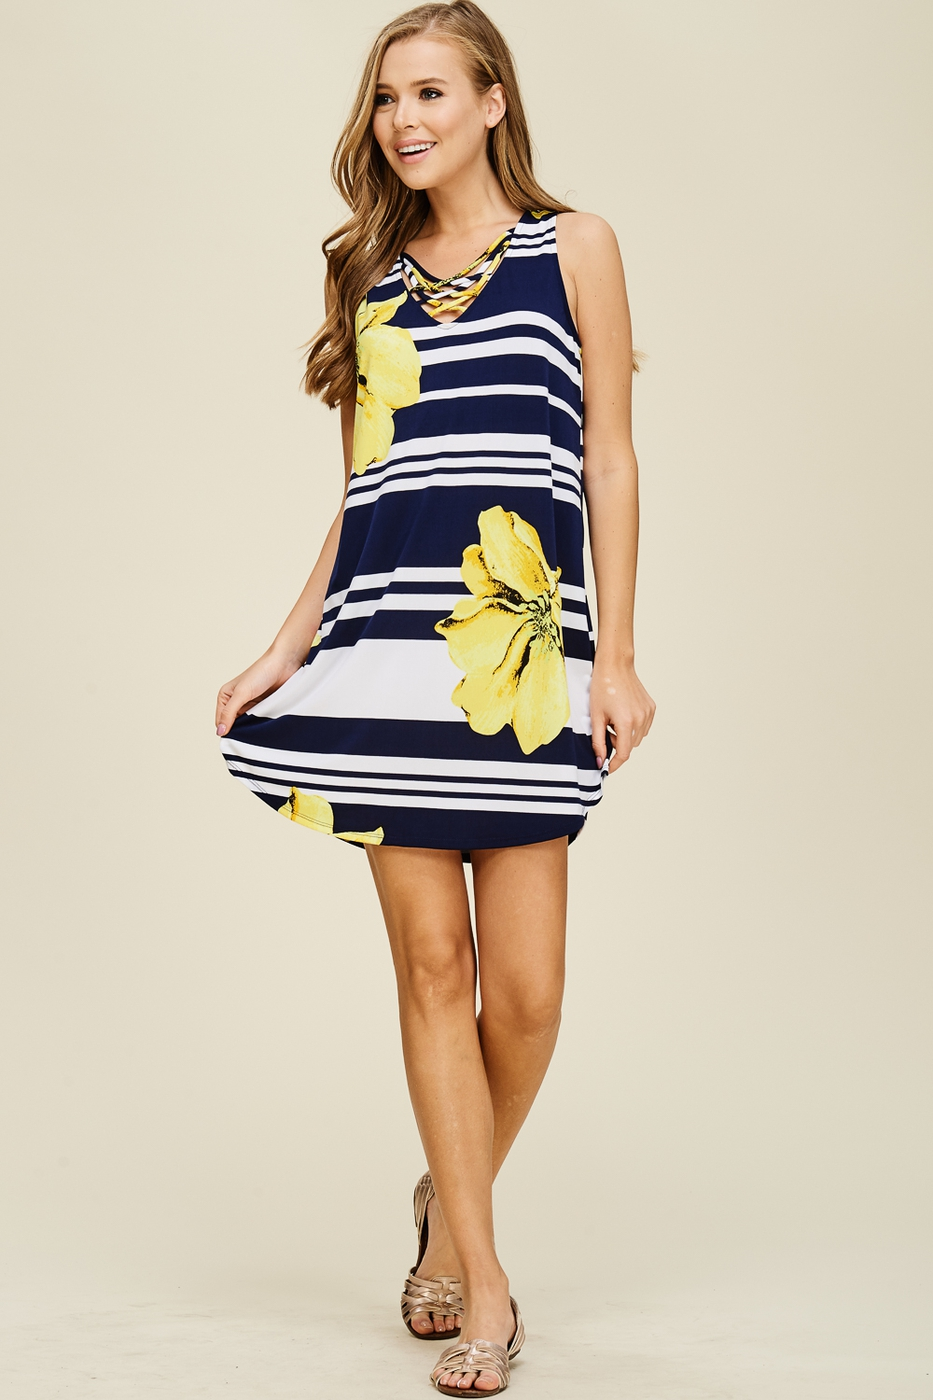 Criss Cross Floral And Striped Dress - orangeshine.com